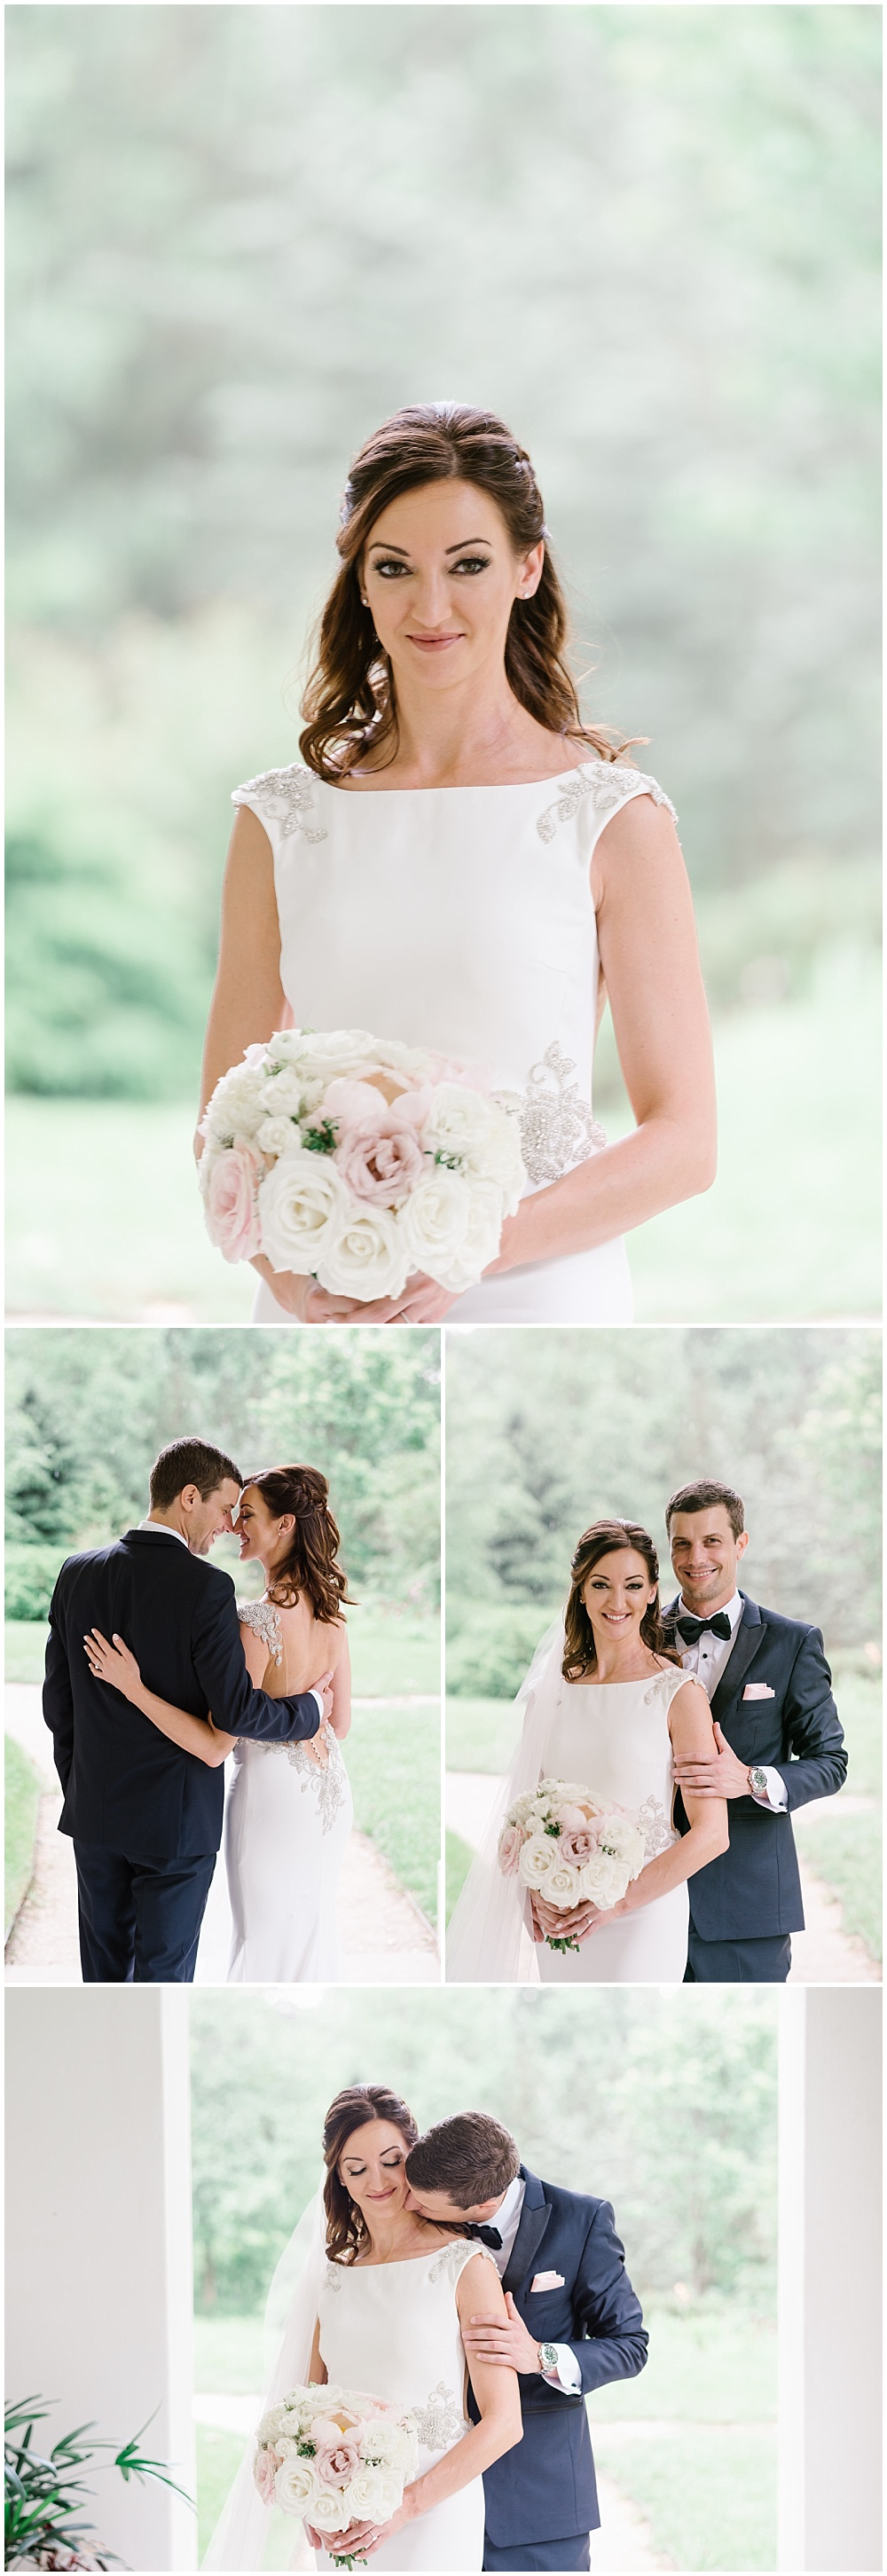 Bride and groom outdoor portraits on the grounds of the beautiful Indianapolis Museum of Art Newfields. | Spring blush garden-inspired memorial day weekend wedding at the beautiful Ritz Charles Garden Pavilion with Stacy Able Photography and Jessica Dum Wedding Coordination